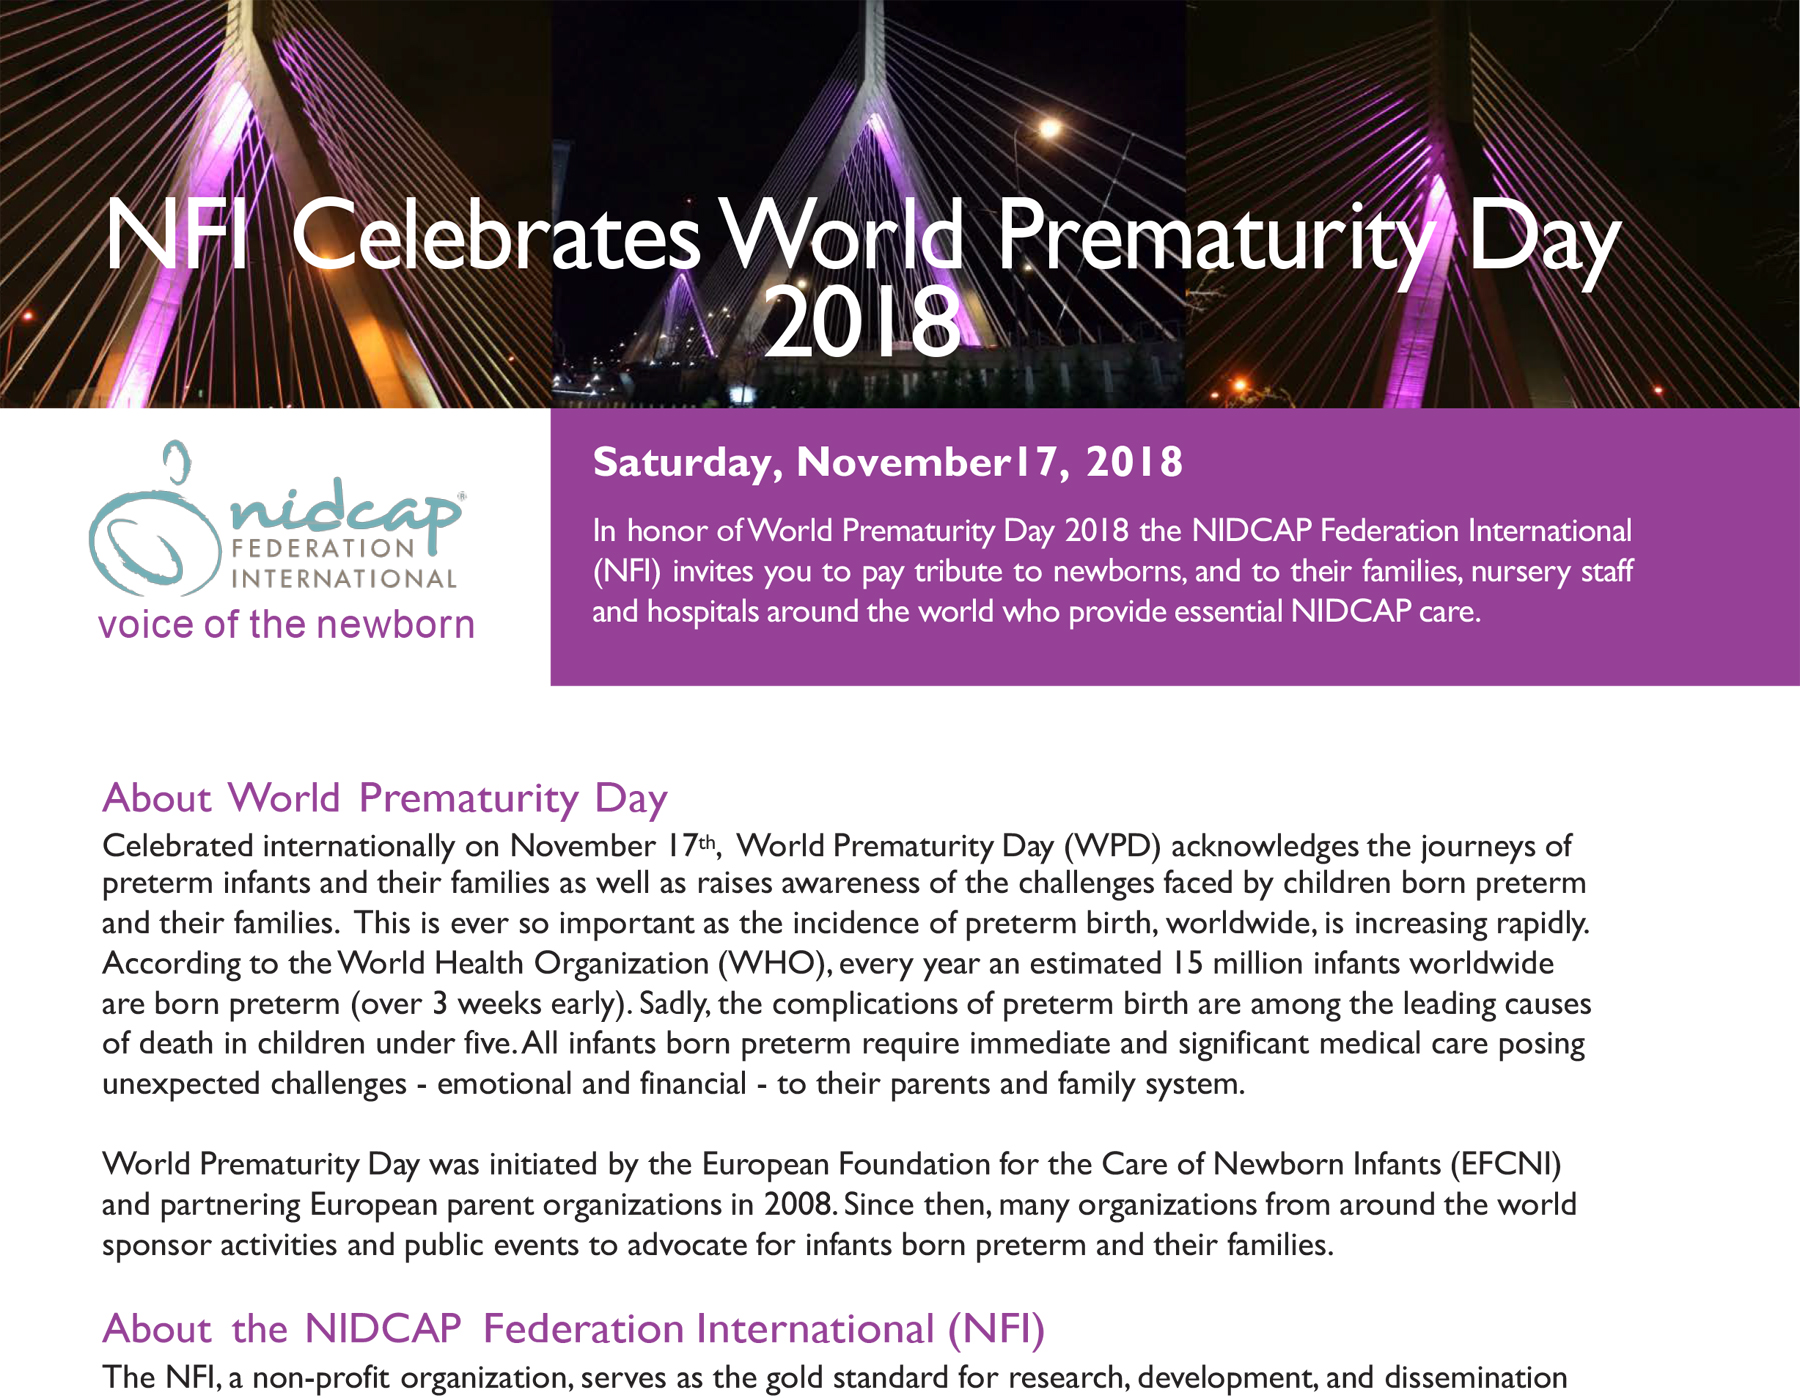 World Prematurity Day 2018 NFI Info Sheet image